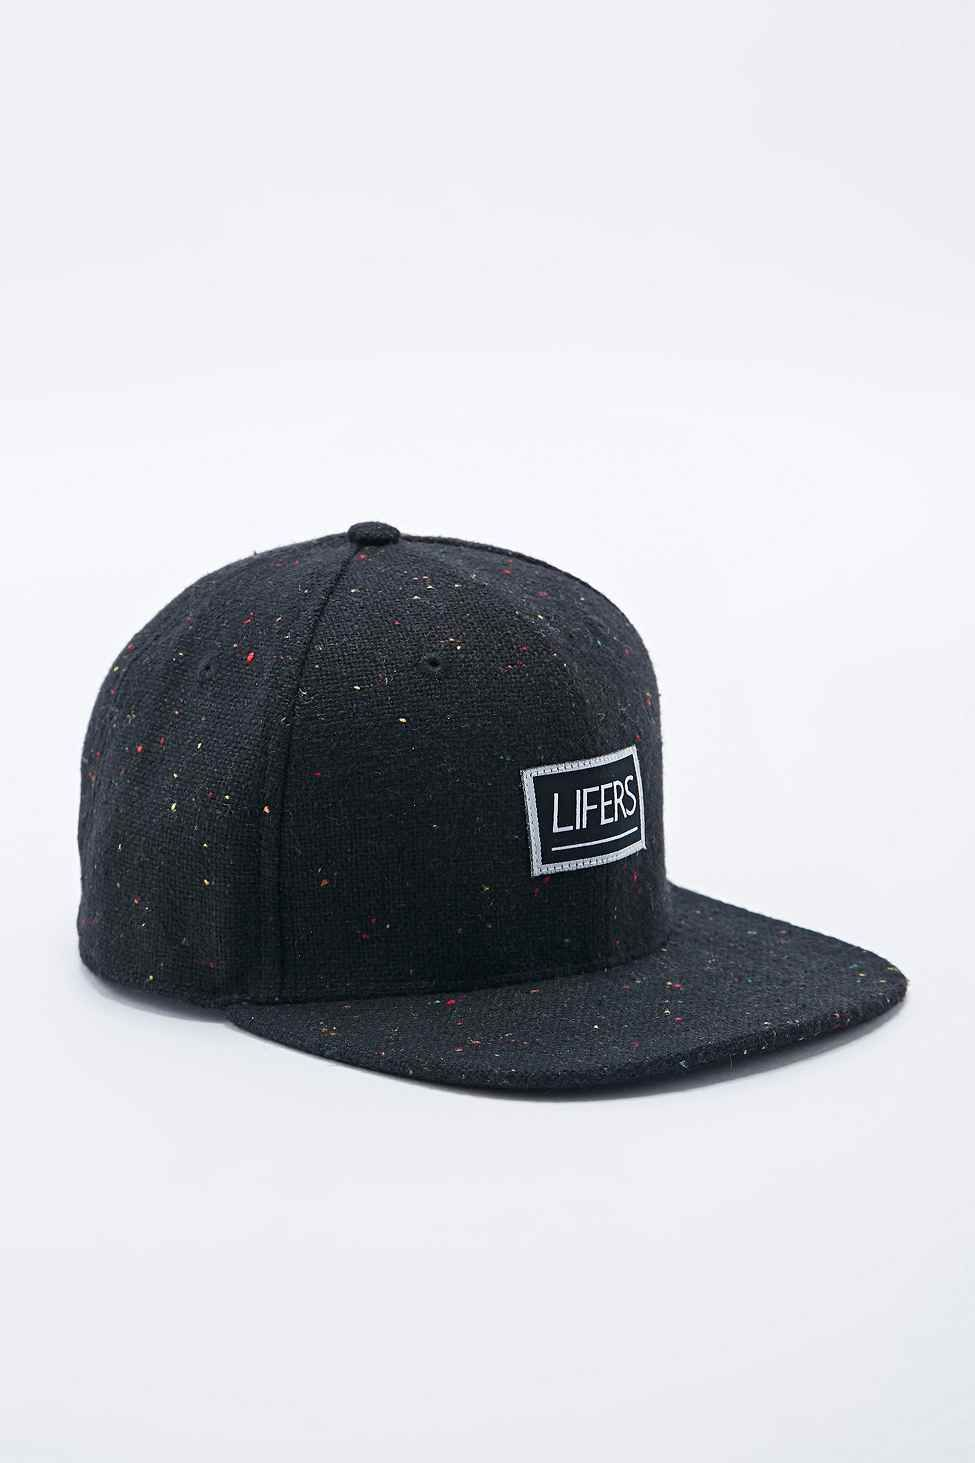 05a07b23be8 Lifers Neppy Snapback Cap in Black - Urban Outfitters